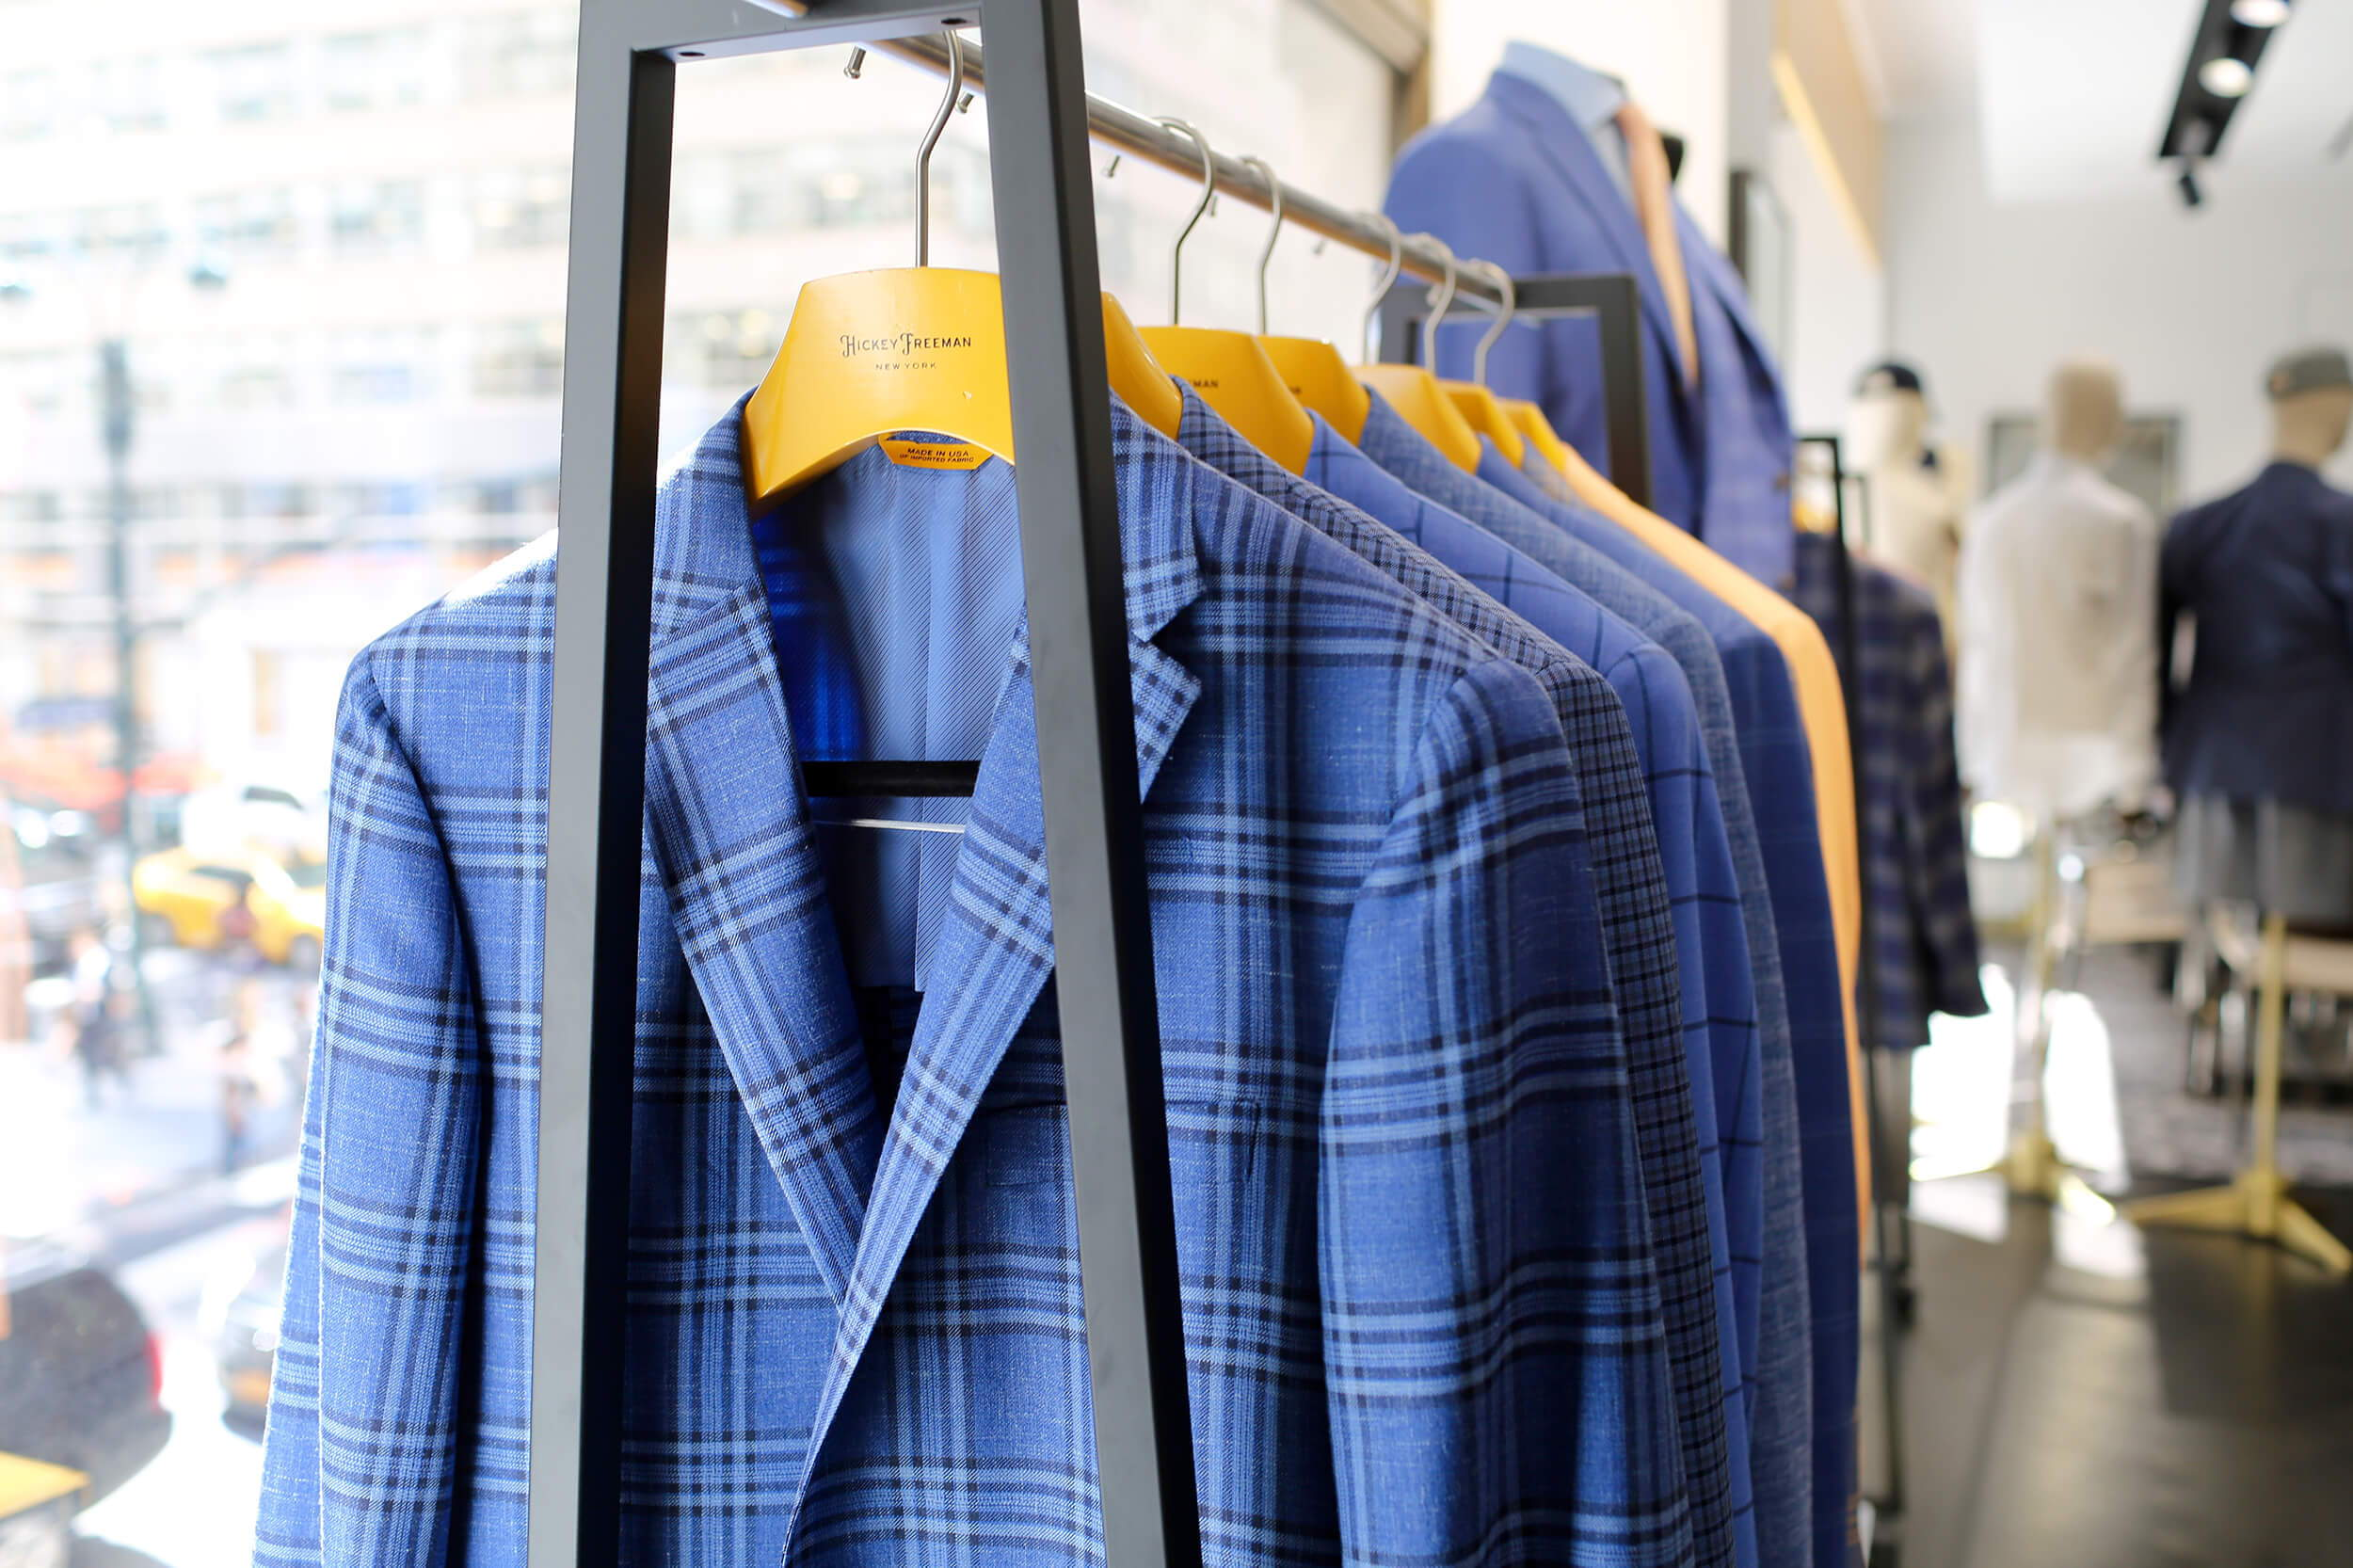 Blue Hickey Freeman Jackets hanging on a rack from inside of the store